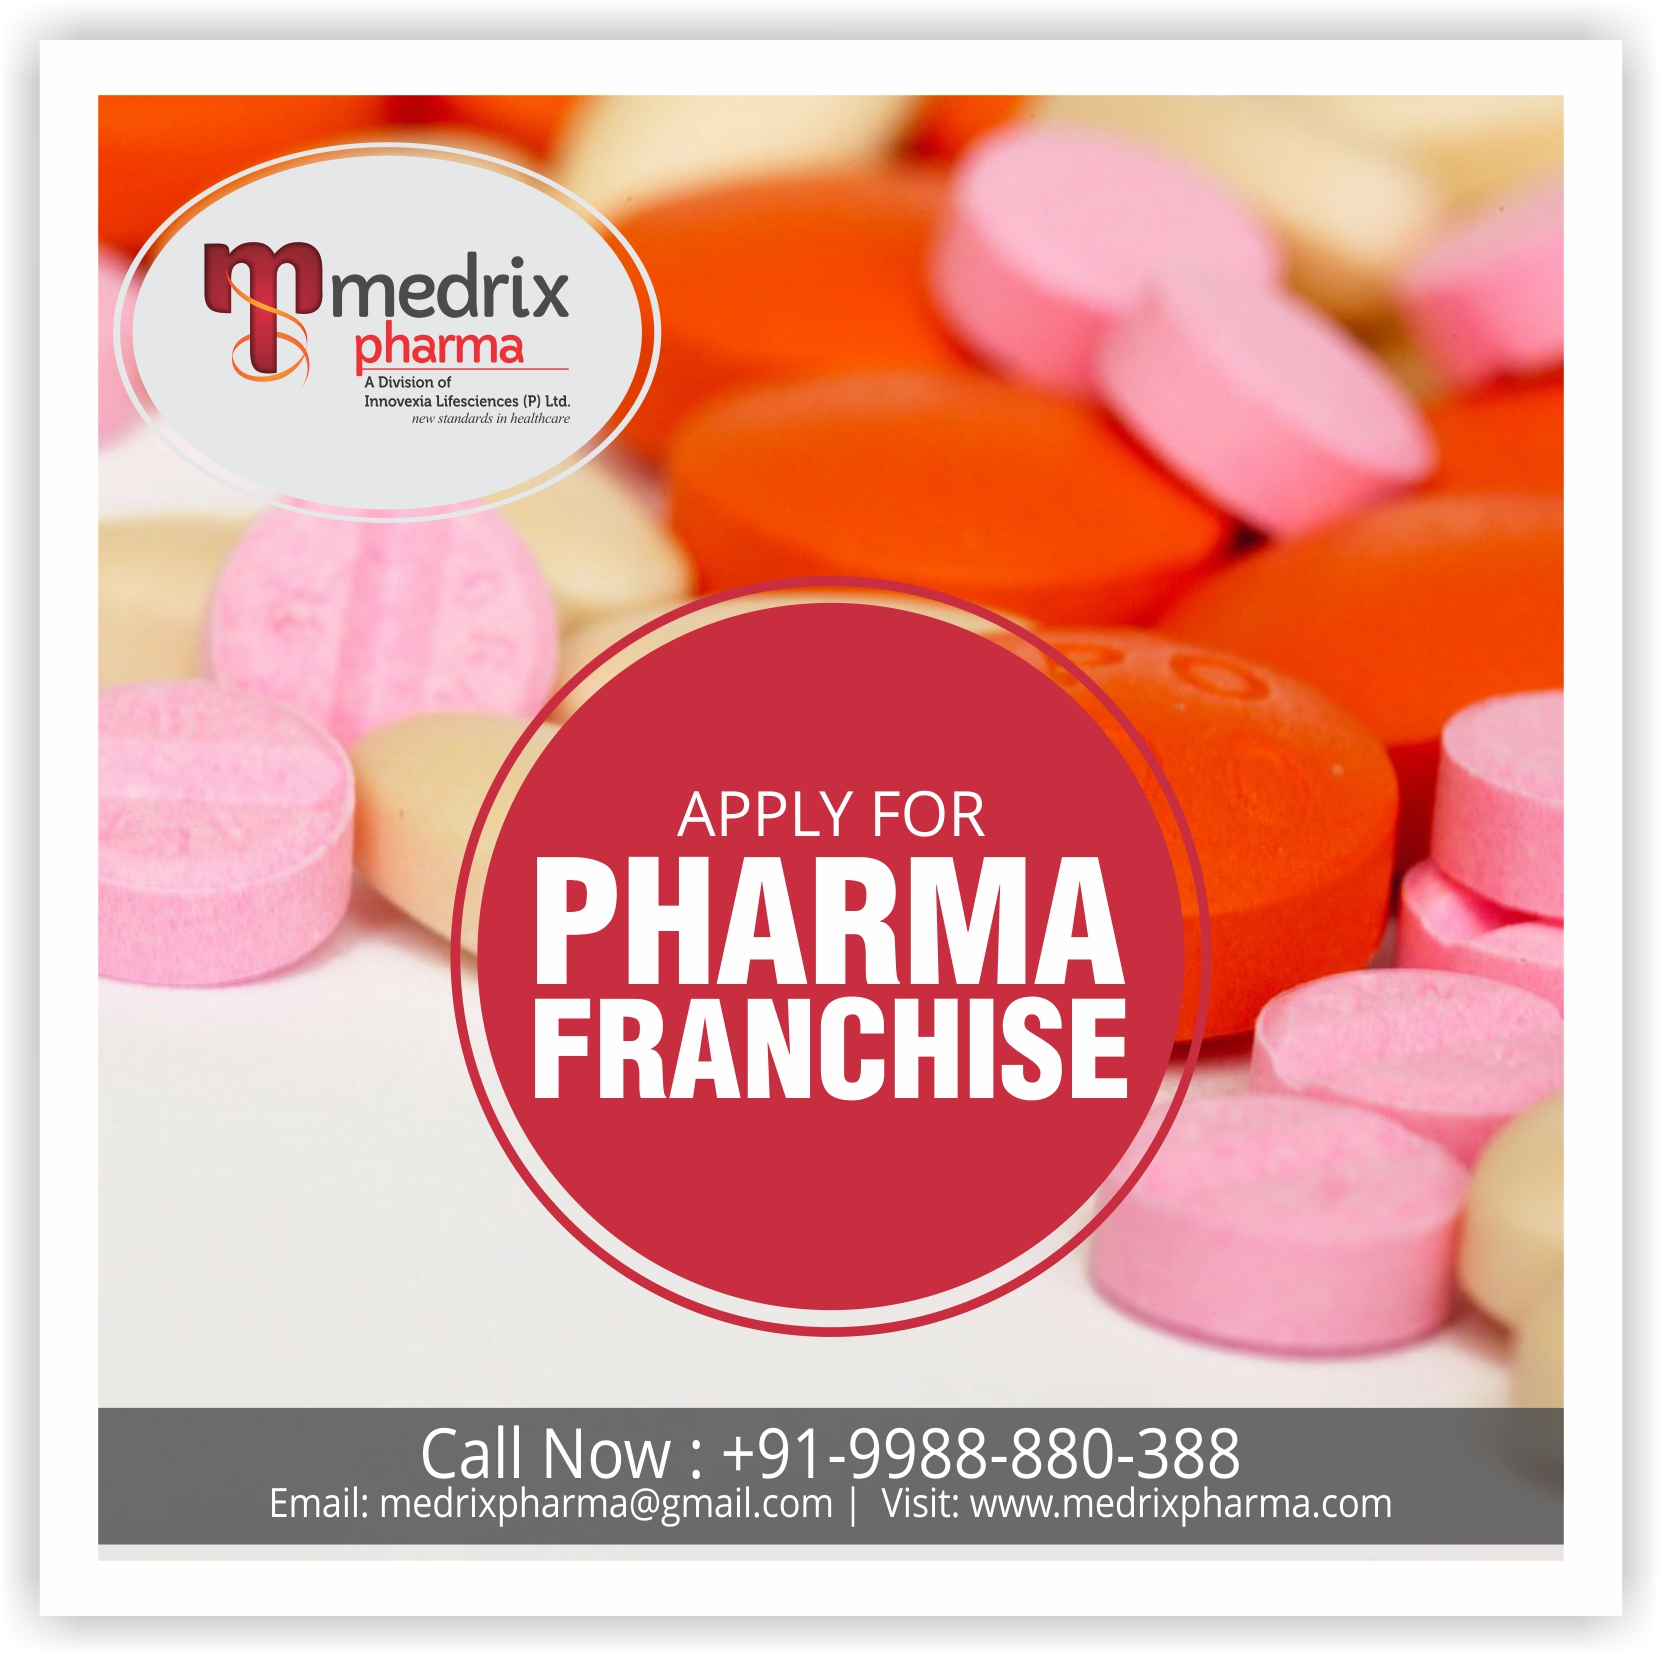 Pharma Franchise for Azithromycin Medicines